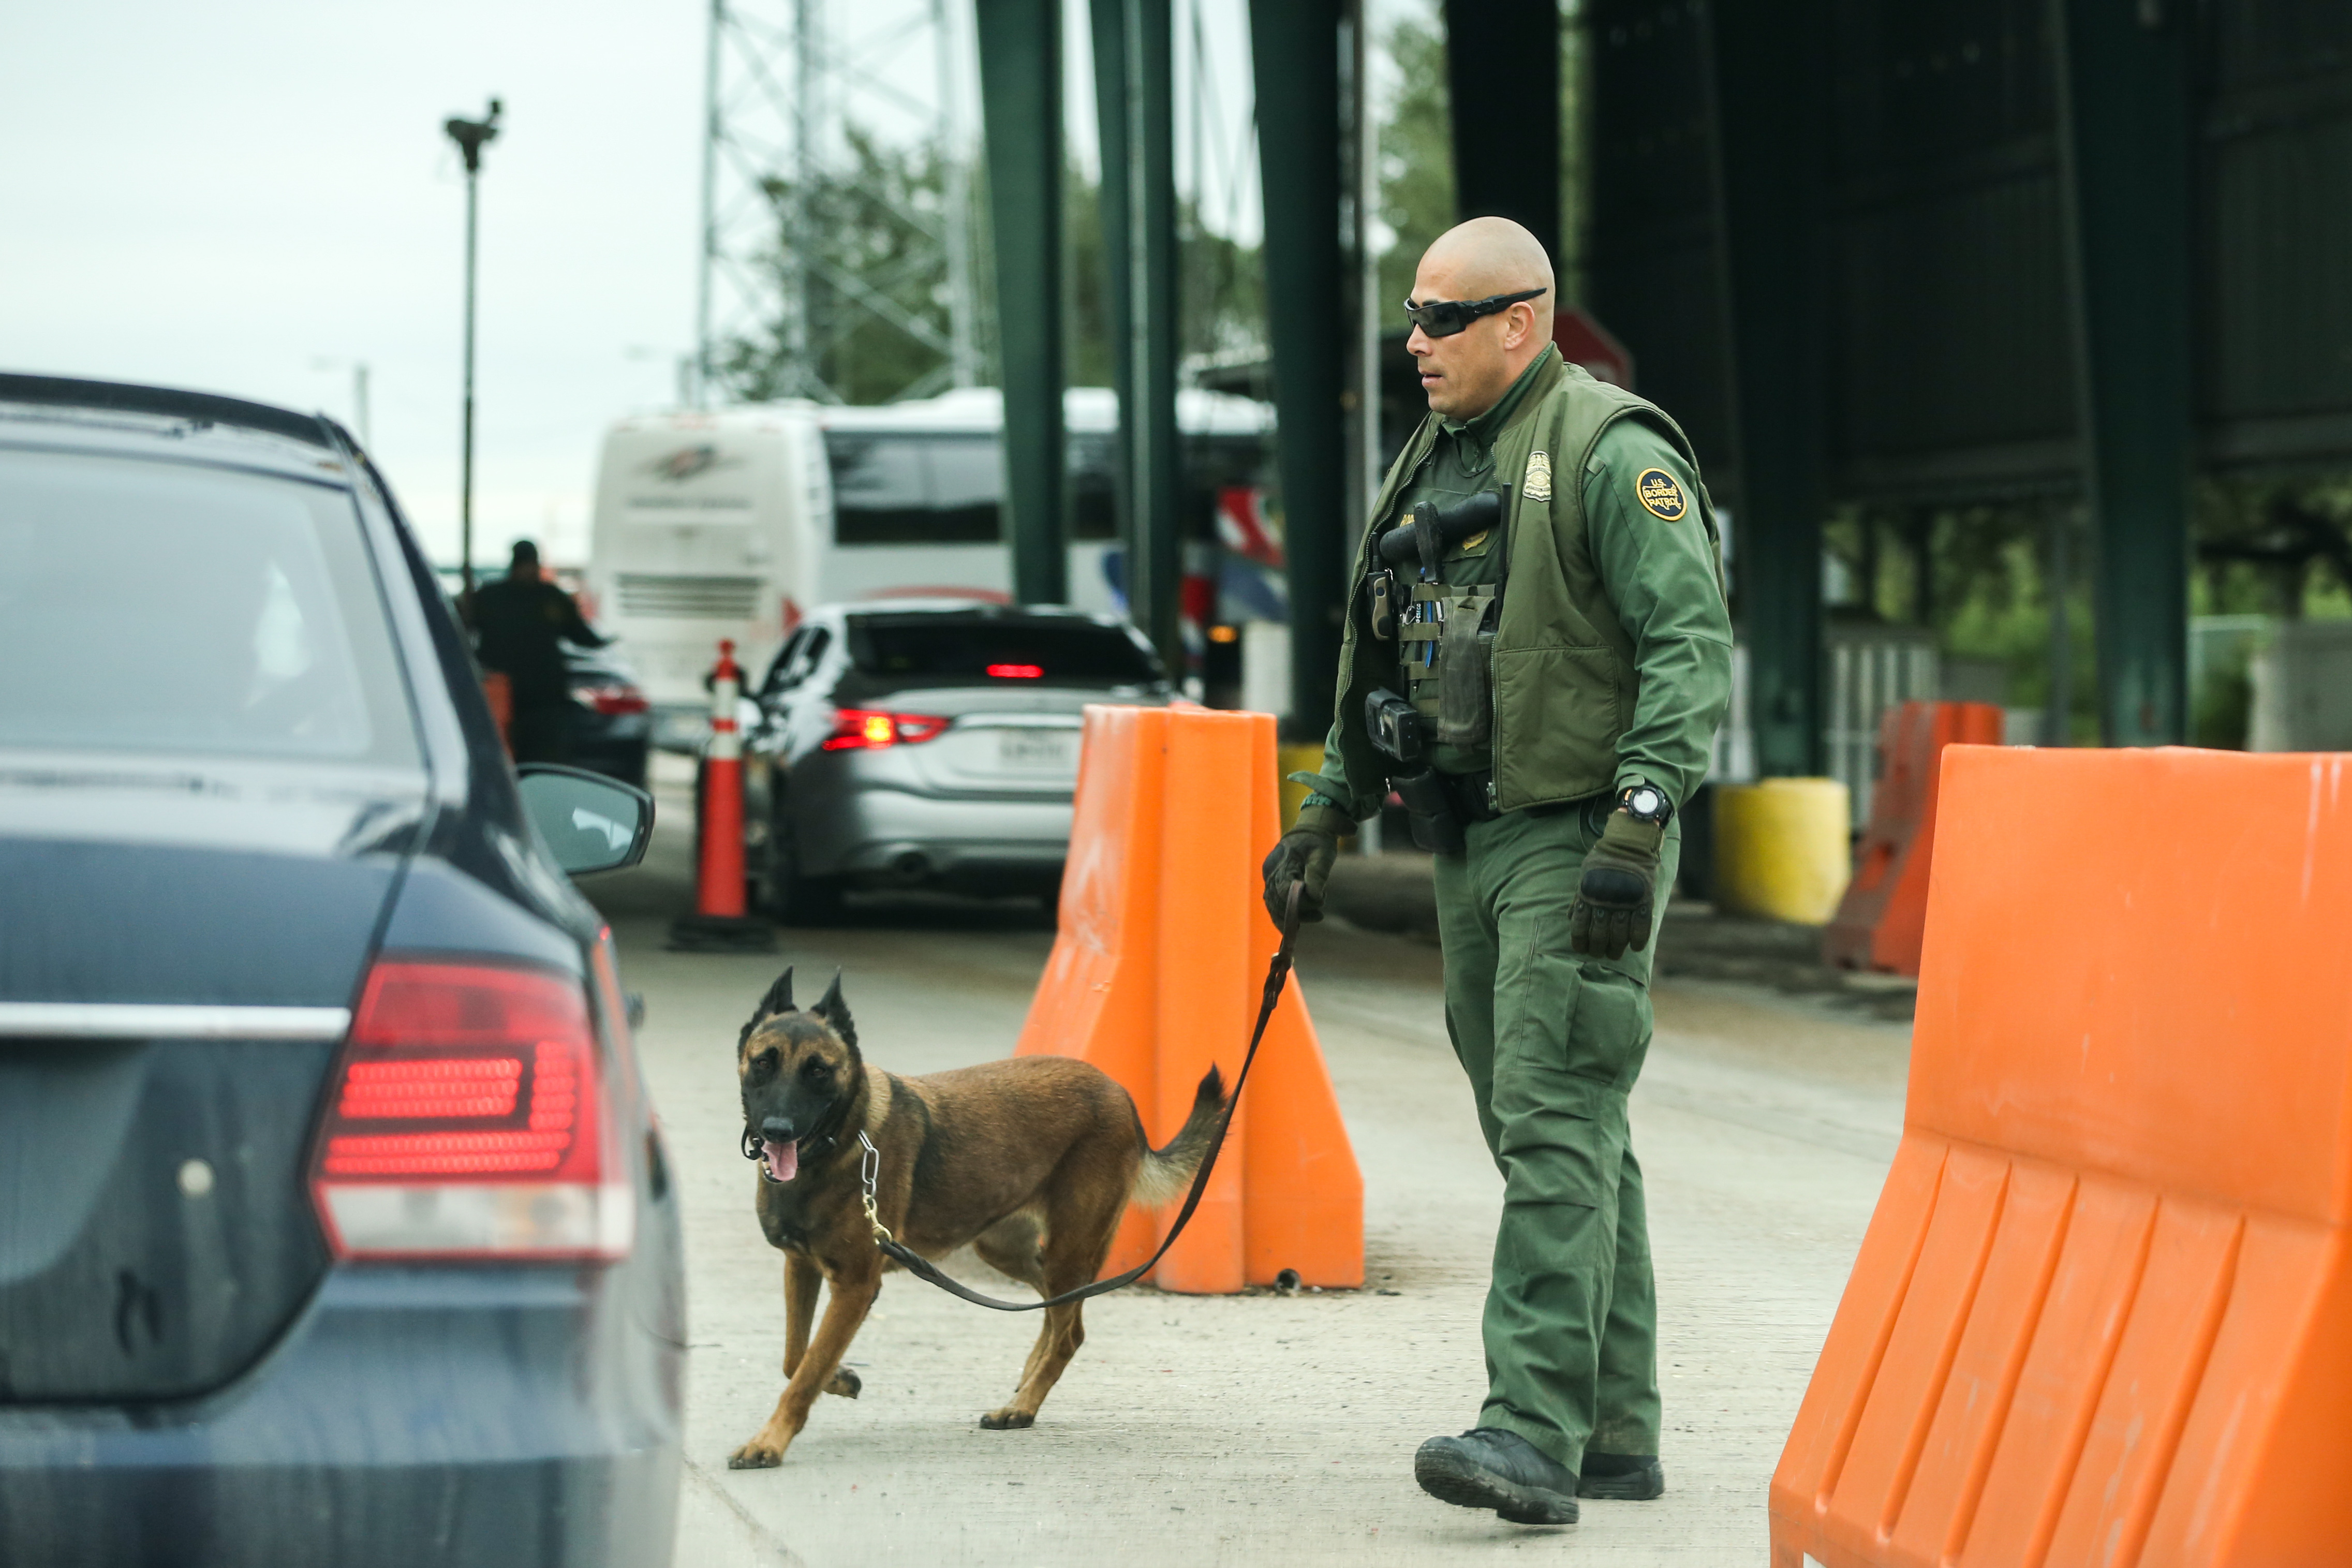 theepochtimes.com - Charlotte Cuthbertson - Human Trafficking, Sexual Assaults Key Aspects of Crisis on Southern Border